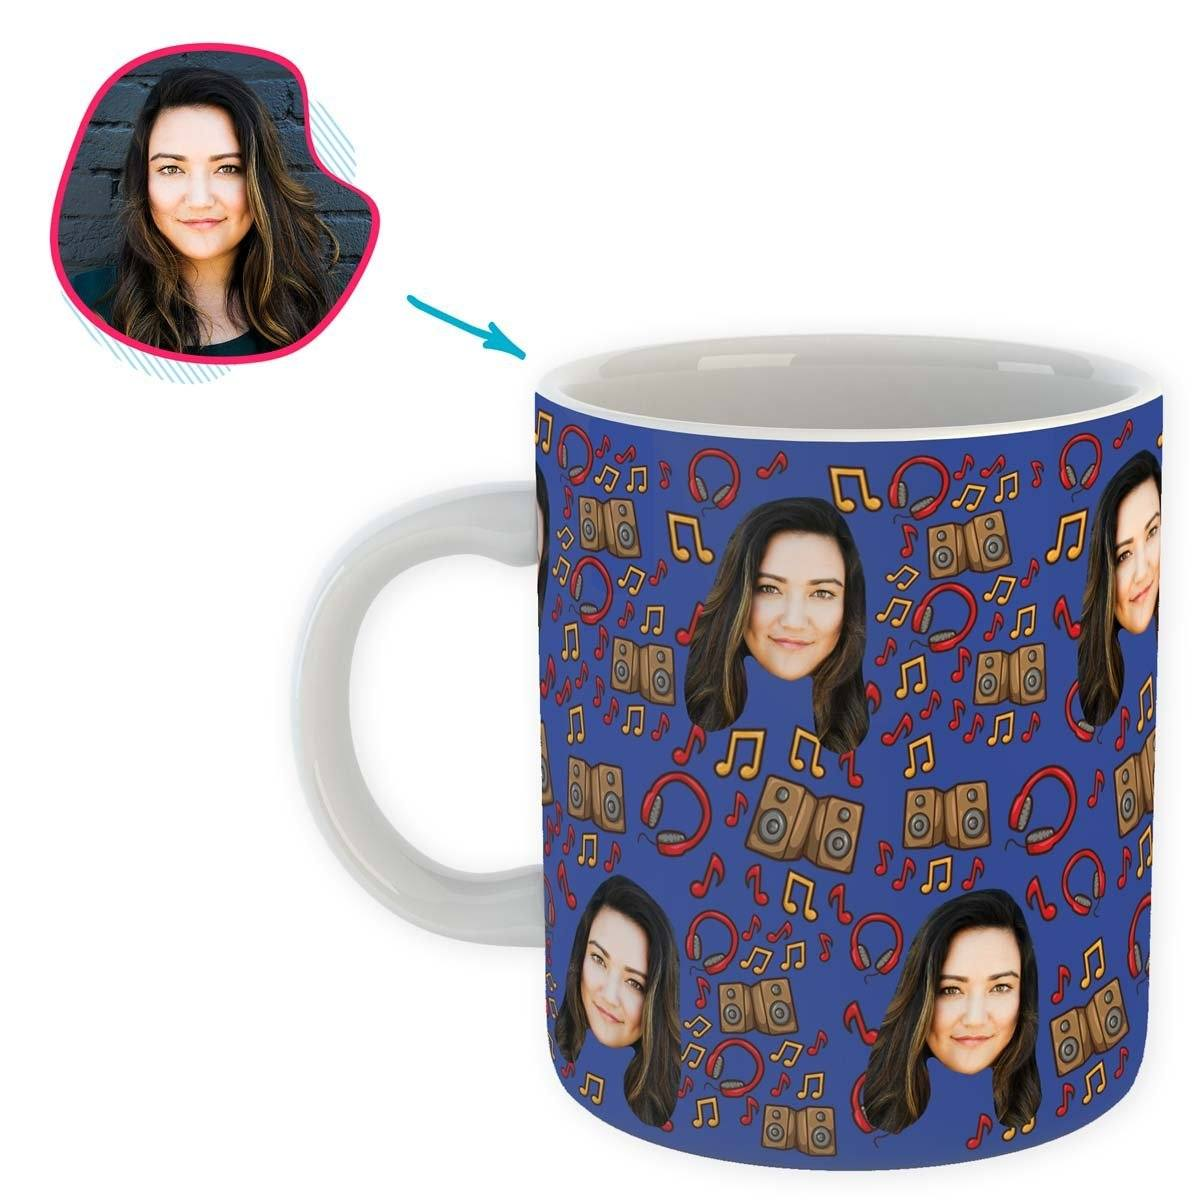 darkblue Music mug personalized with photo of face printed on it